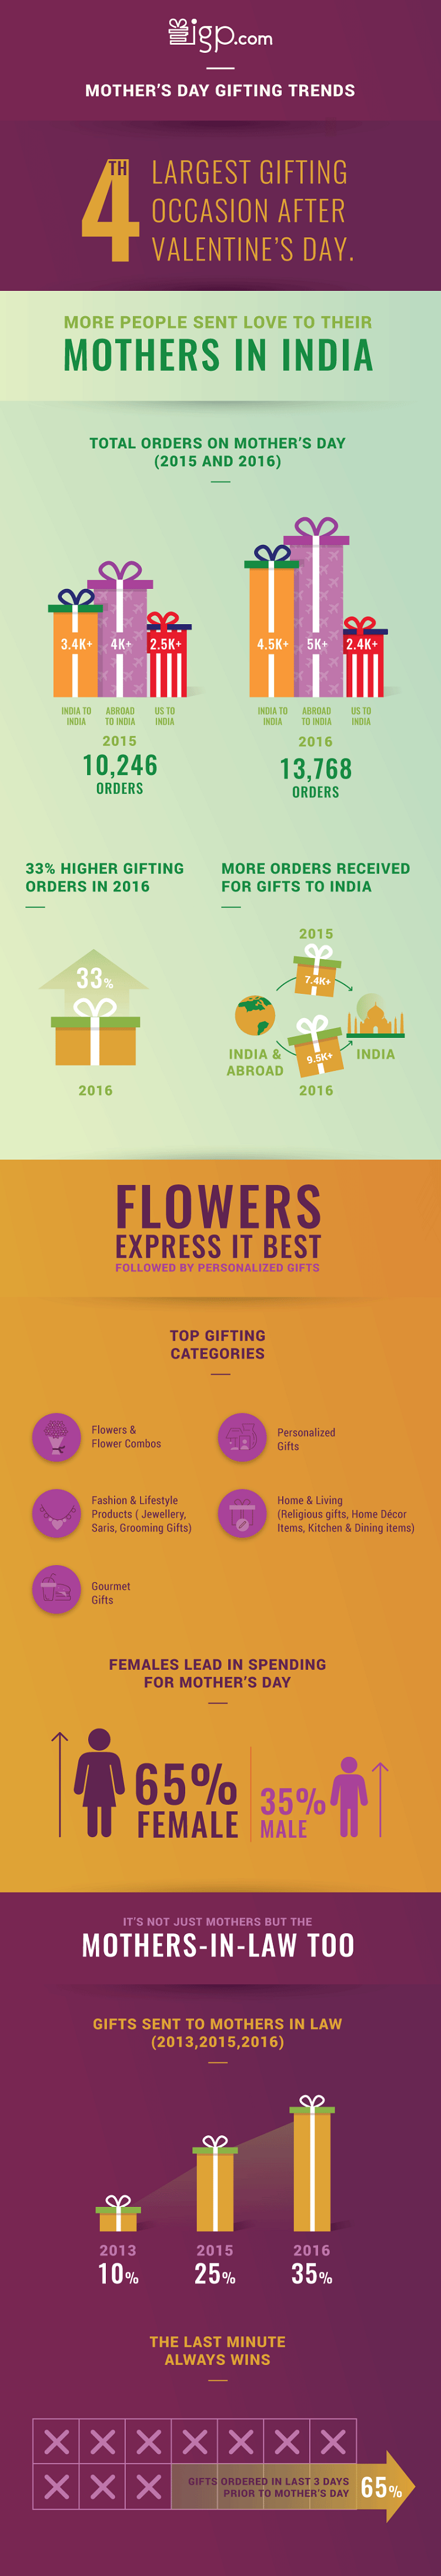 <b>Mother&#8217;s Day Gifting Trends</b>&#8220;></td> </tr> <tr> <td width=